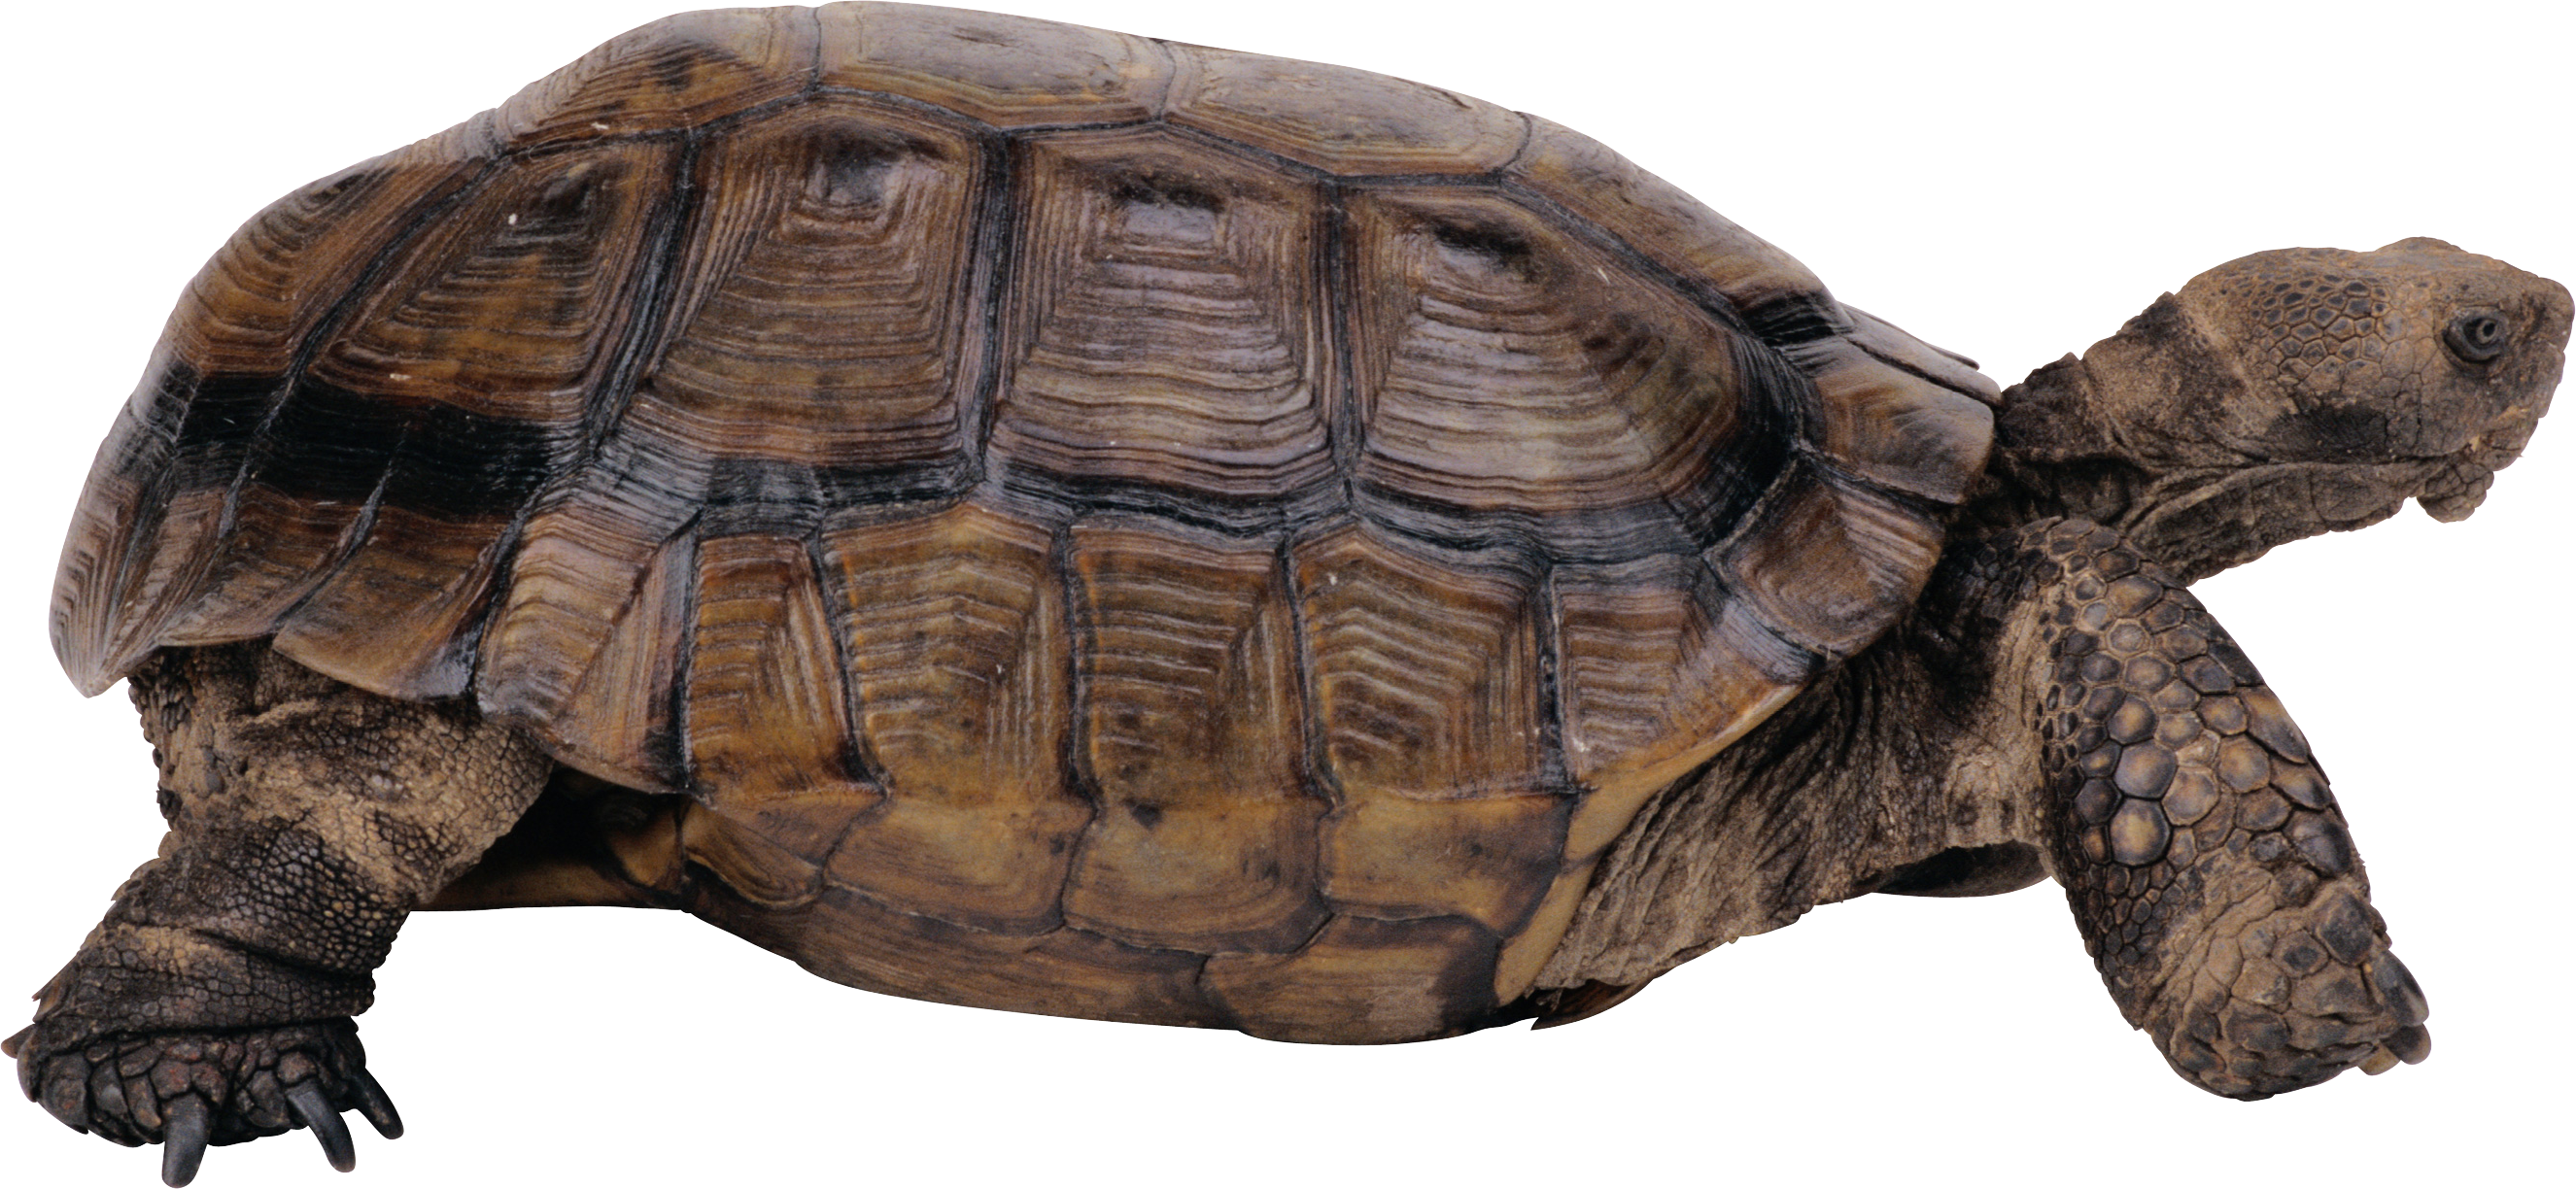 Desert clipart tortoise. Turtle png images free